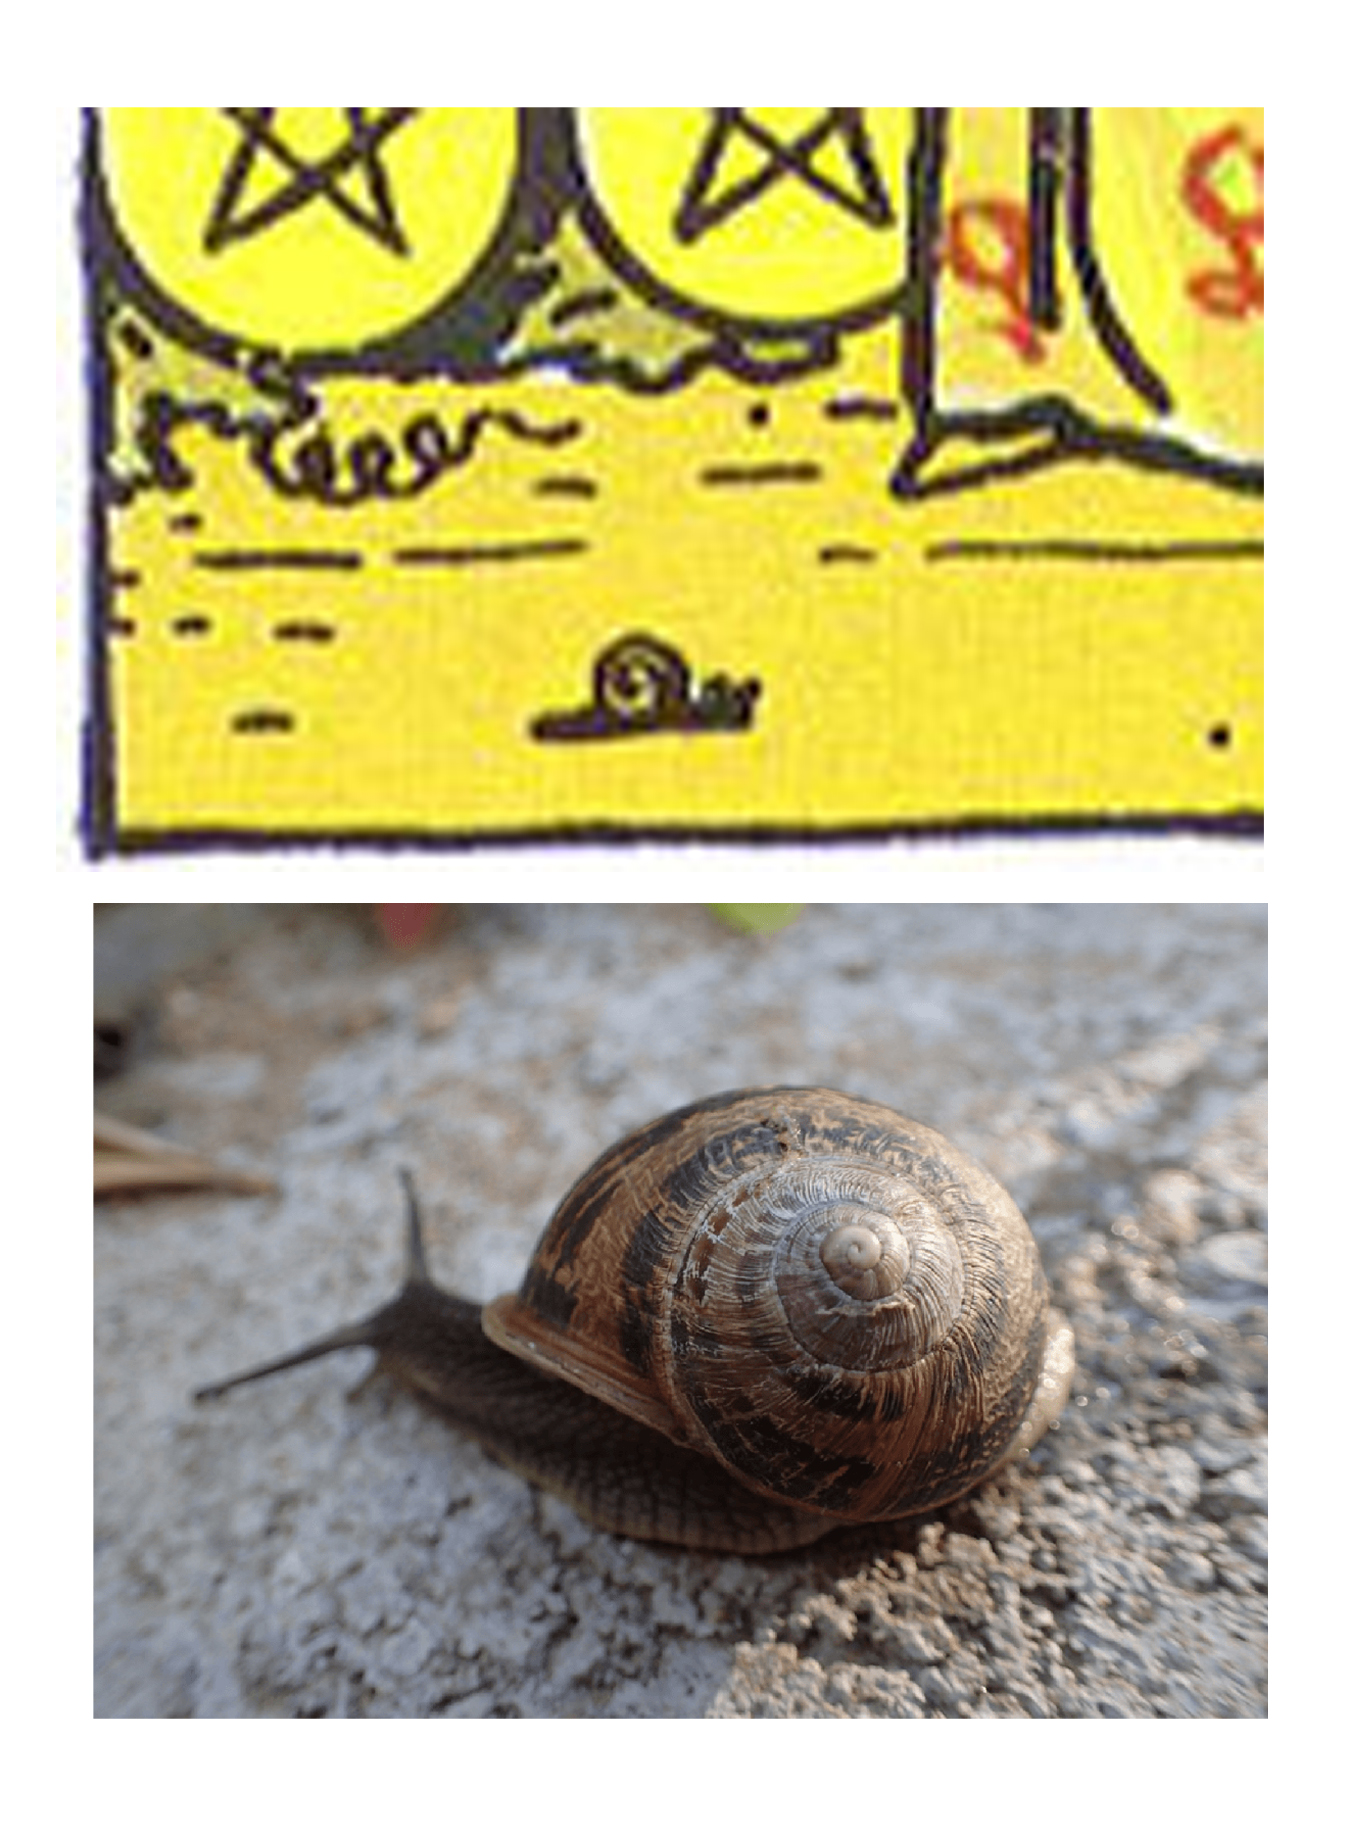 Much has been made of the snail on the 9 of Pentacles, which Marcus Katz and Tali Goodwin suggest is a symbol for self-sufficiency. Personally I'm always reminded of Jeremy the lonely left-twisting snail, whose idiosyncratic spiral kept him from finding a mate.